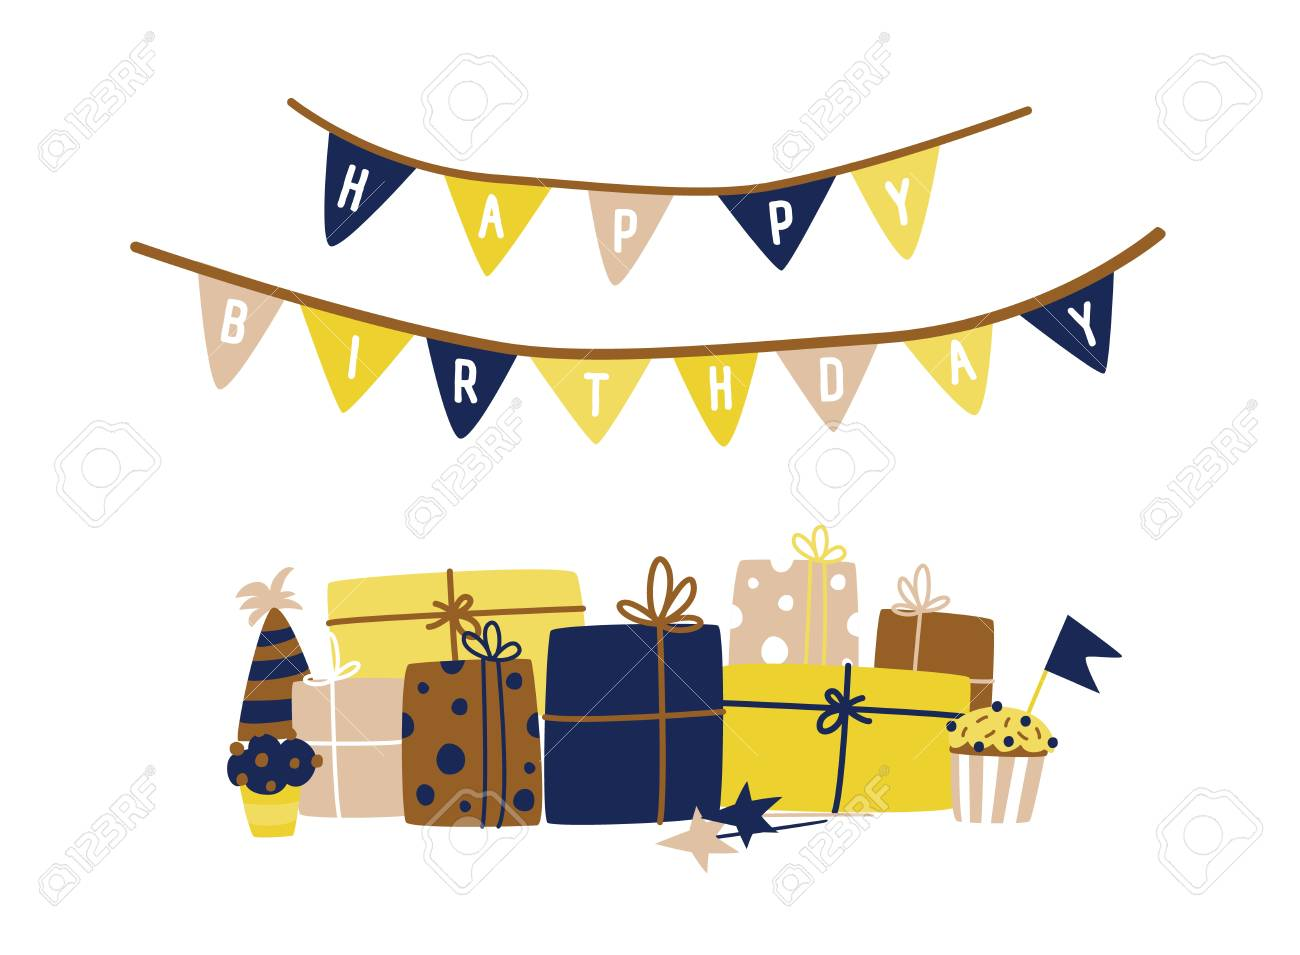 Greeting Card Template With Happy Birthday Wish Written On Flag